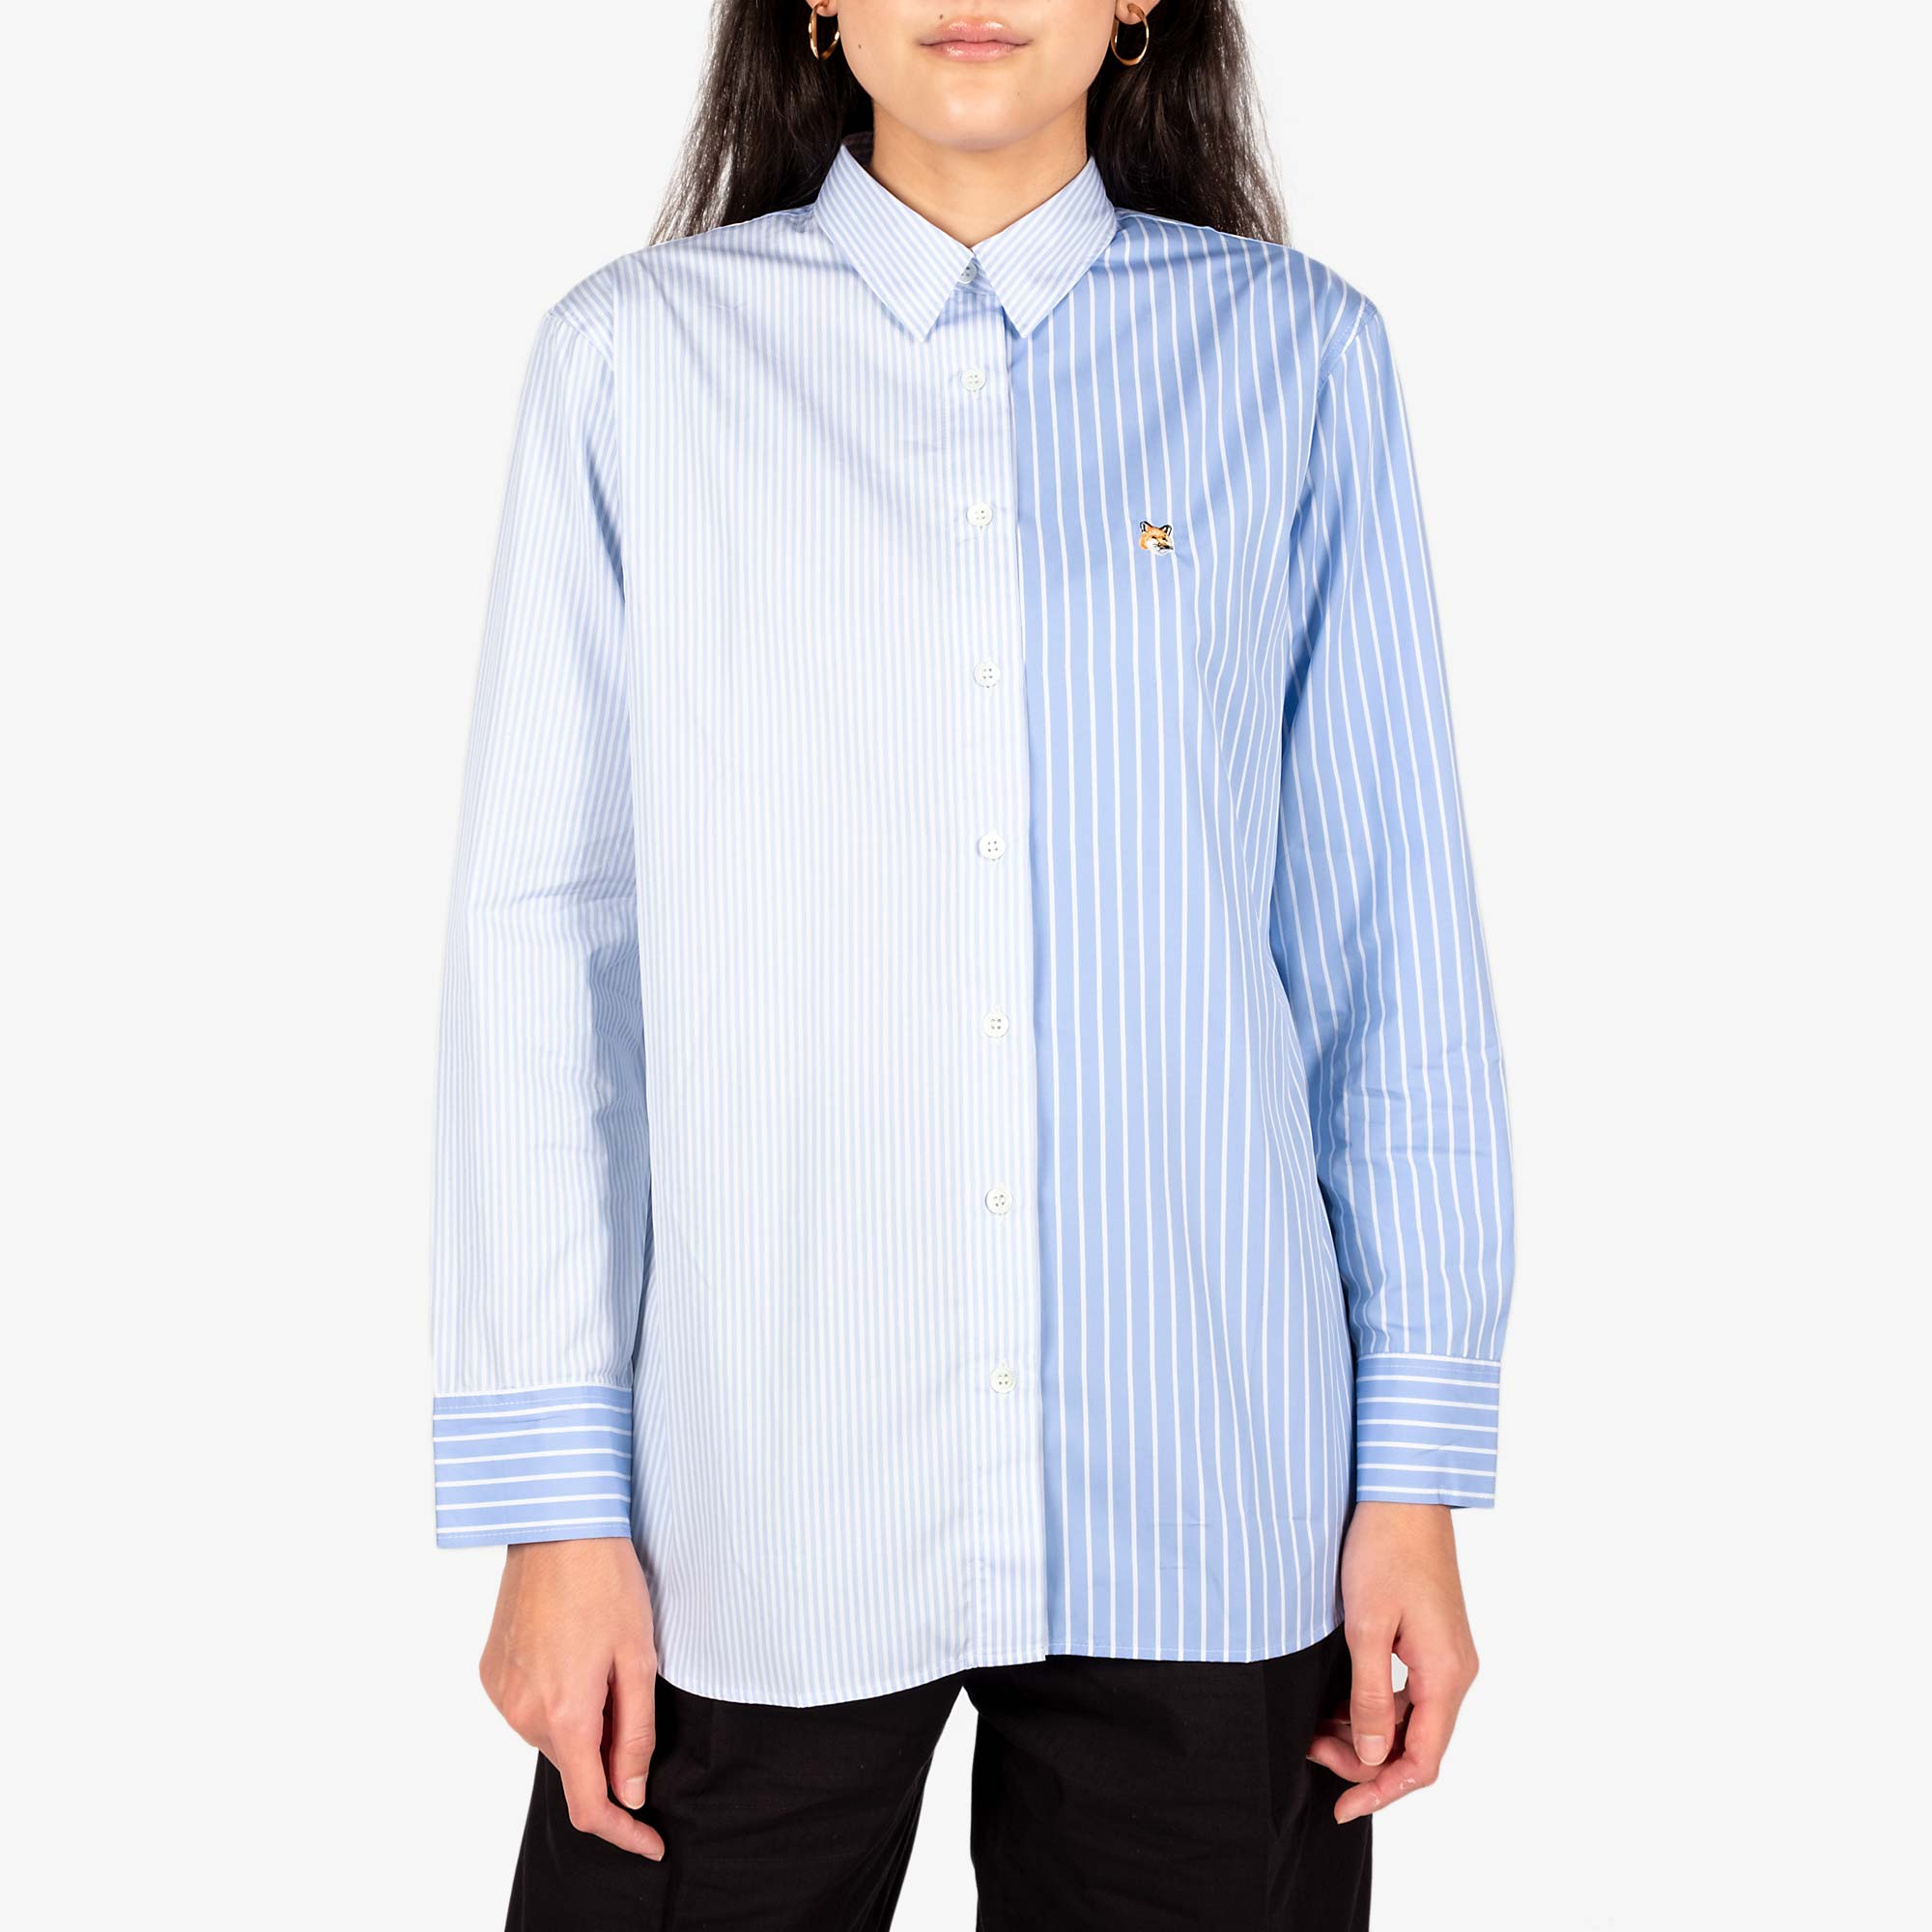 Maison Kitsune Womens Fox Head Classic Shirt - Blue Stripe 1